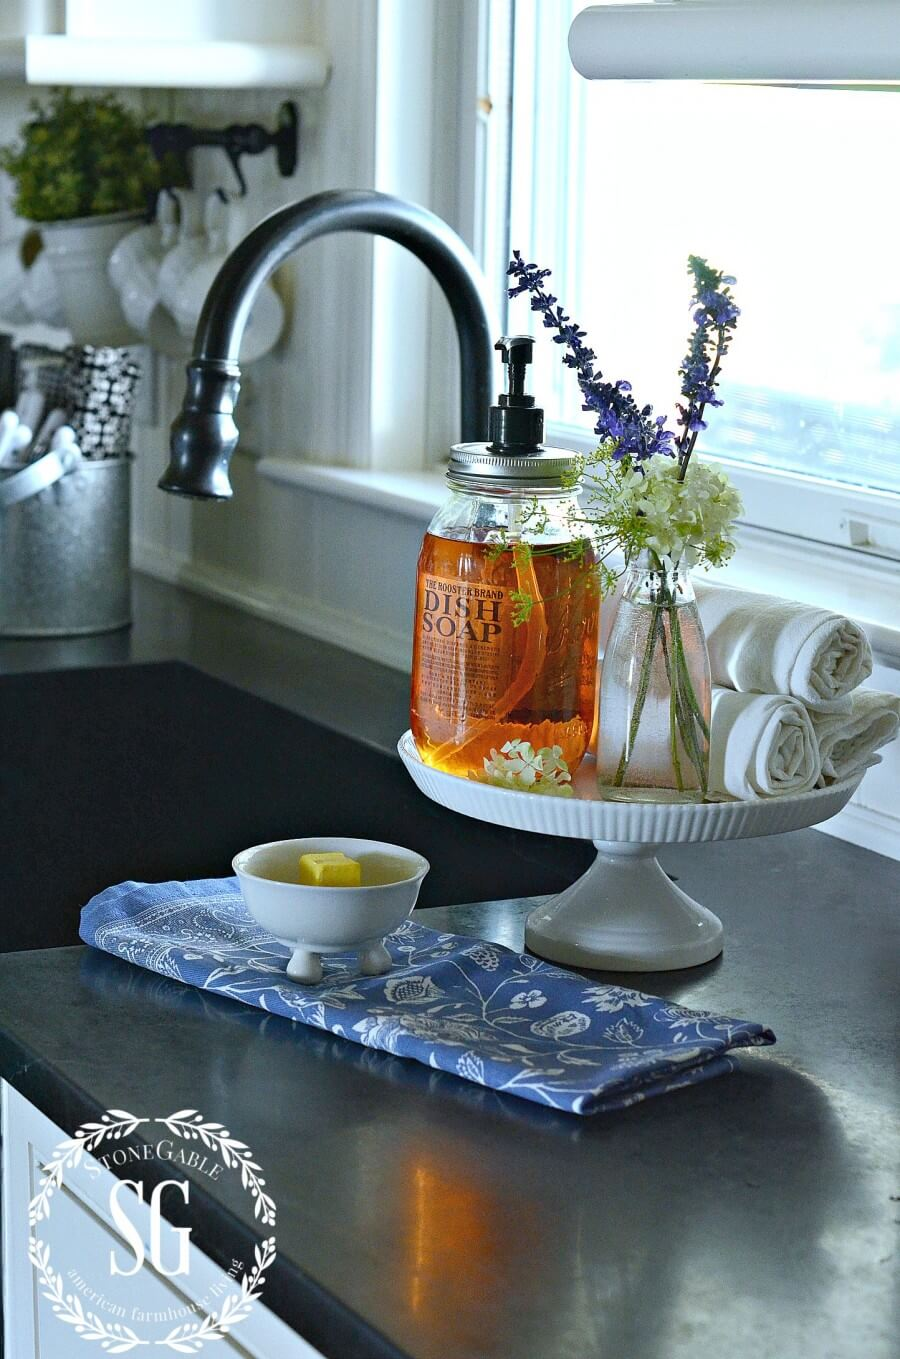 12 Best Kitchen Countertop Ideas To Be Well Organized ... on Counter Top Decor  id=74778